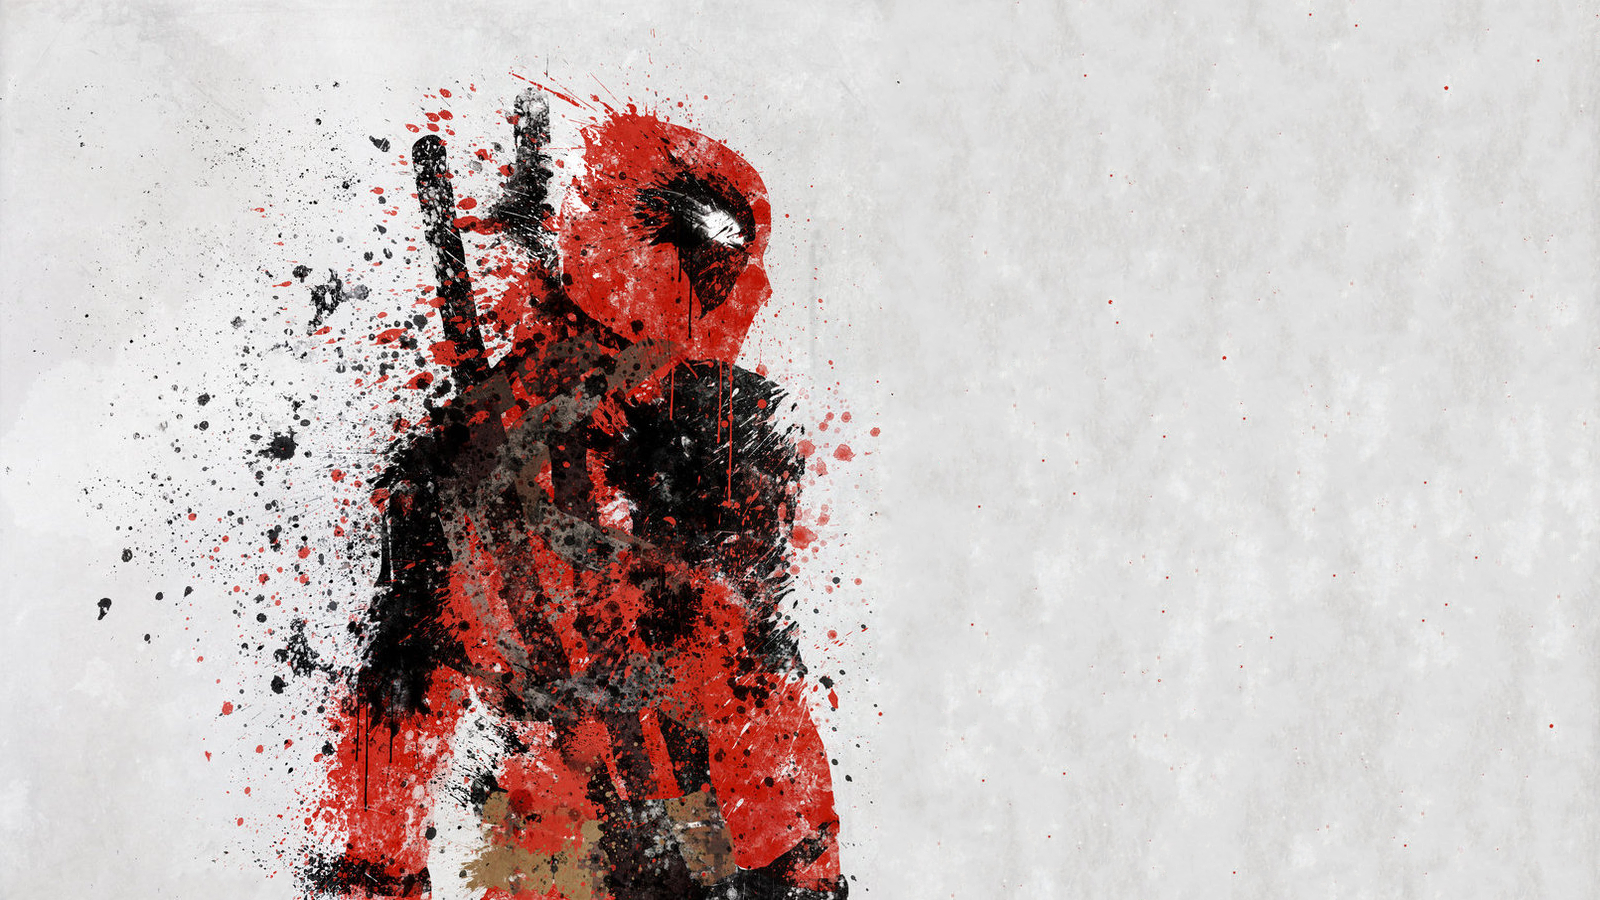 Deadpool Wallpaper Free High Definition Wallpapers